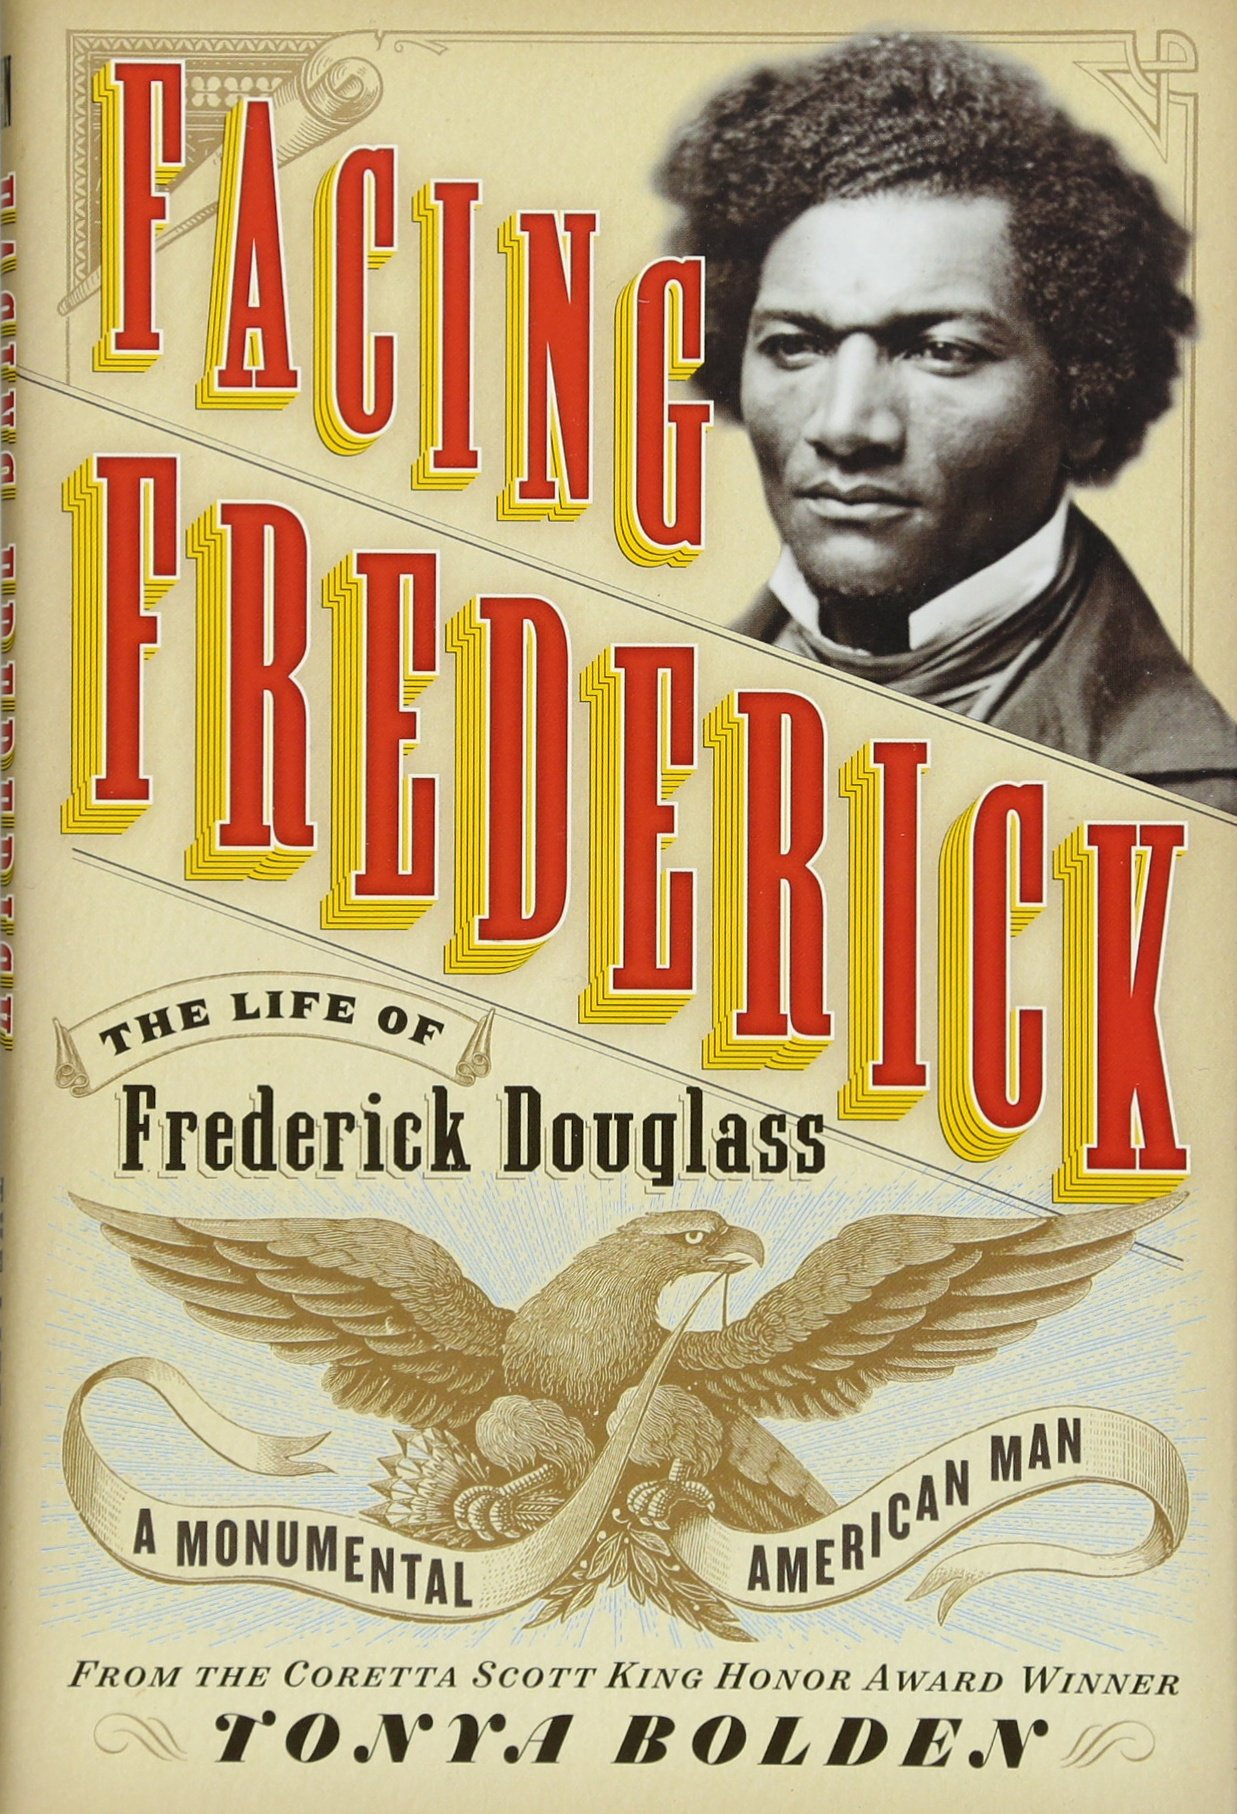 Facing Frederick: The Life of Frederick Douglass, a Monumental ...